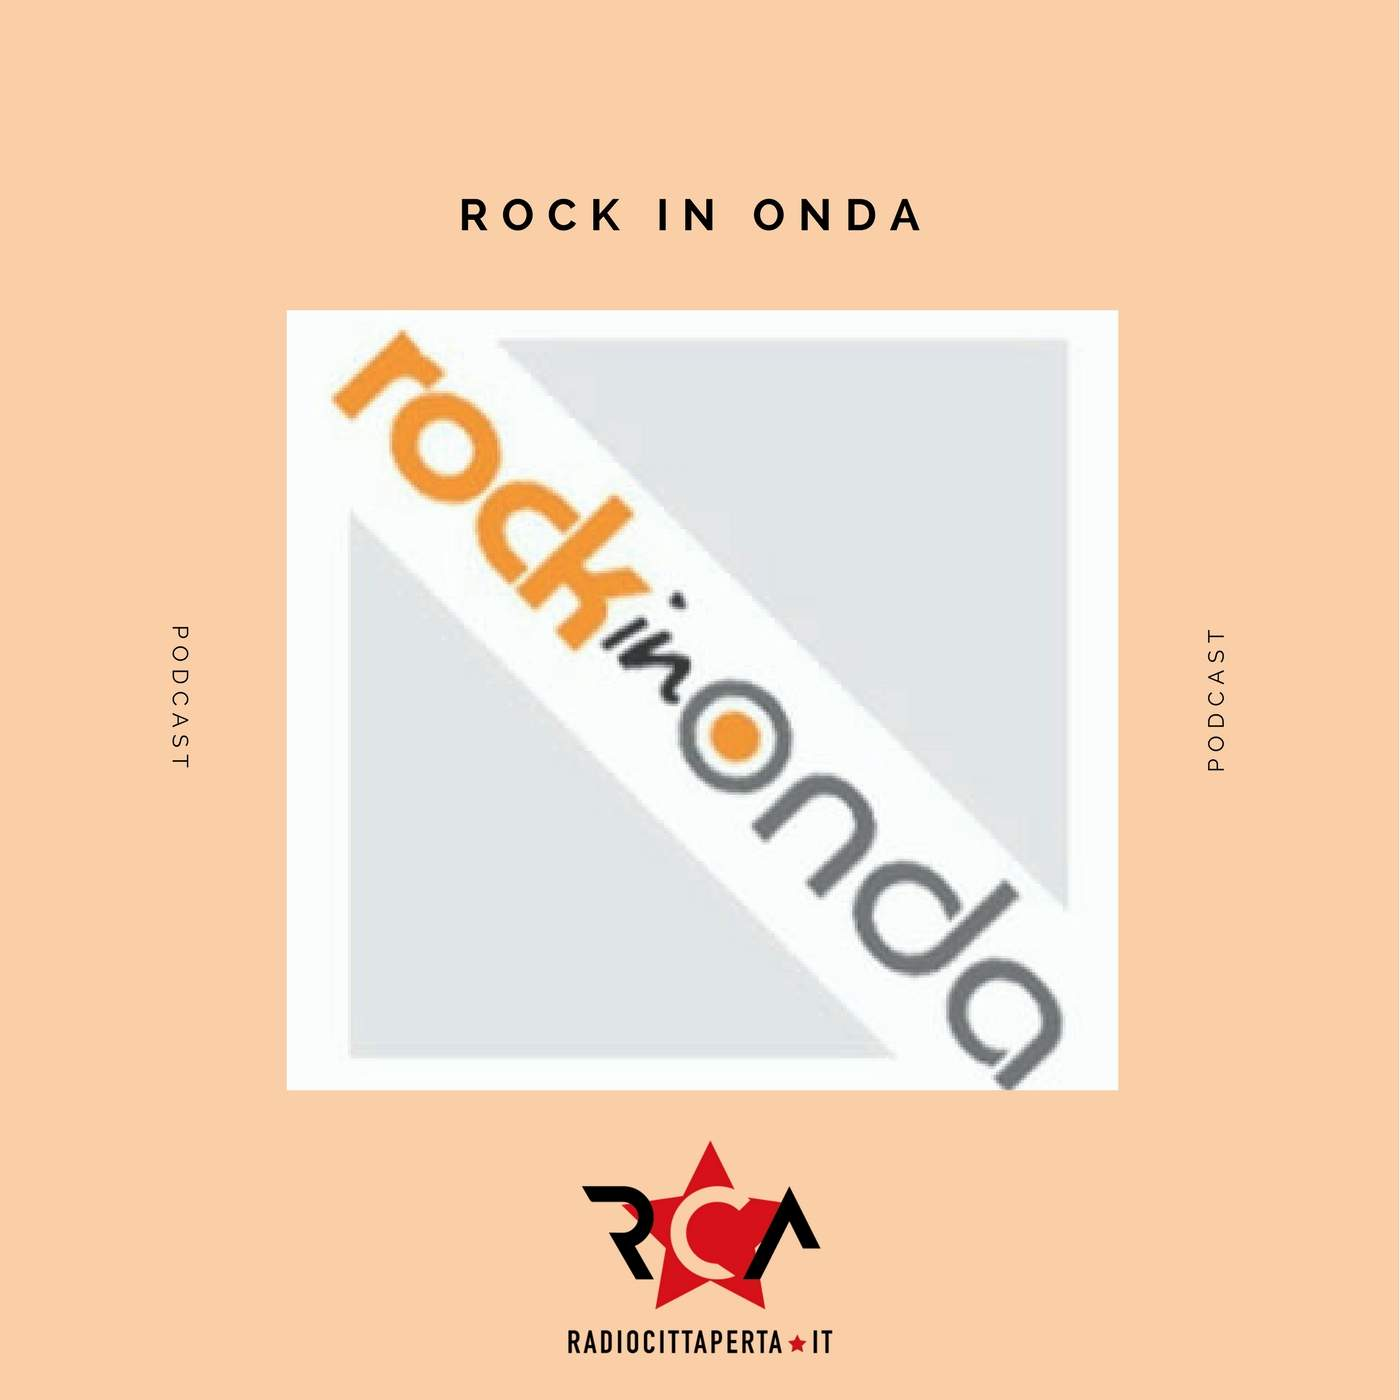 ROCK IN ONDA con CLAUDIO FABRETTI del 20-02-2019